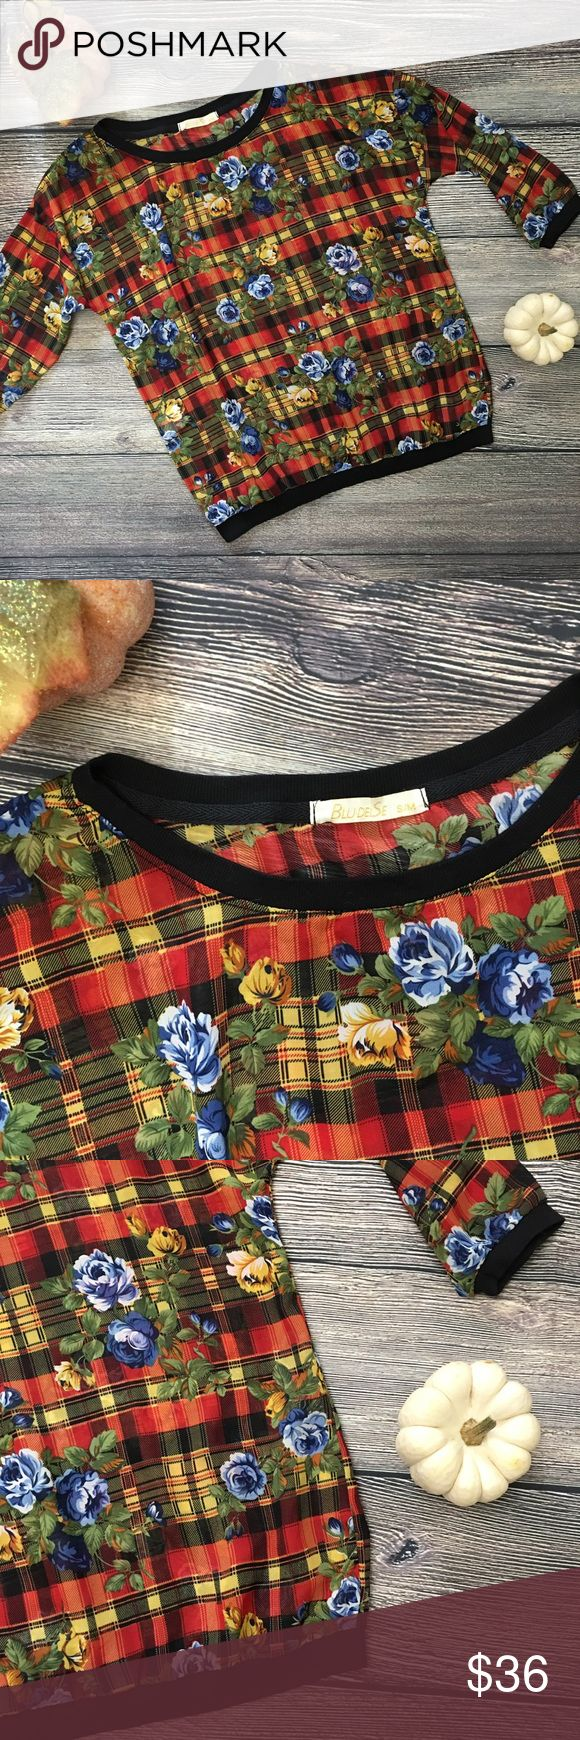 """Euro NWOT Blu Del Se plaid floral blouse sz S/M Purchased in Europe Boutique, lightweight semi-sheer blouse is a great pop of color. New without tags, red/yellow/black plaid accented with blue/yellow flowers. rounded crew collar, hem & sleeves are banded in black ribbing to give lightweight shell structure. wear this piece with a nude bra or throw on a tank underneath. Let it peek out of a black buttoned blazer over jeans. Cotton/Elastane. Approximately 20 1/2"""" bust/pit to pit, 23"""" length…"""